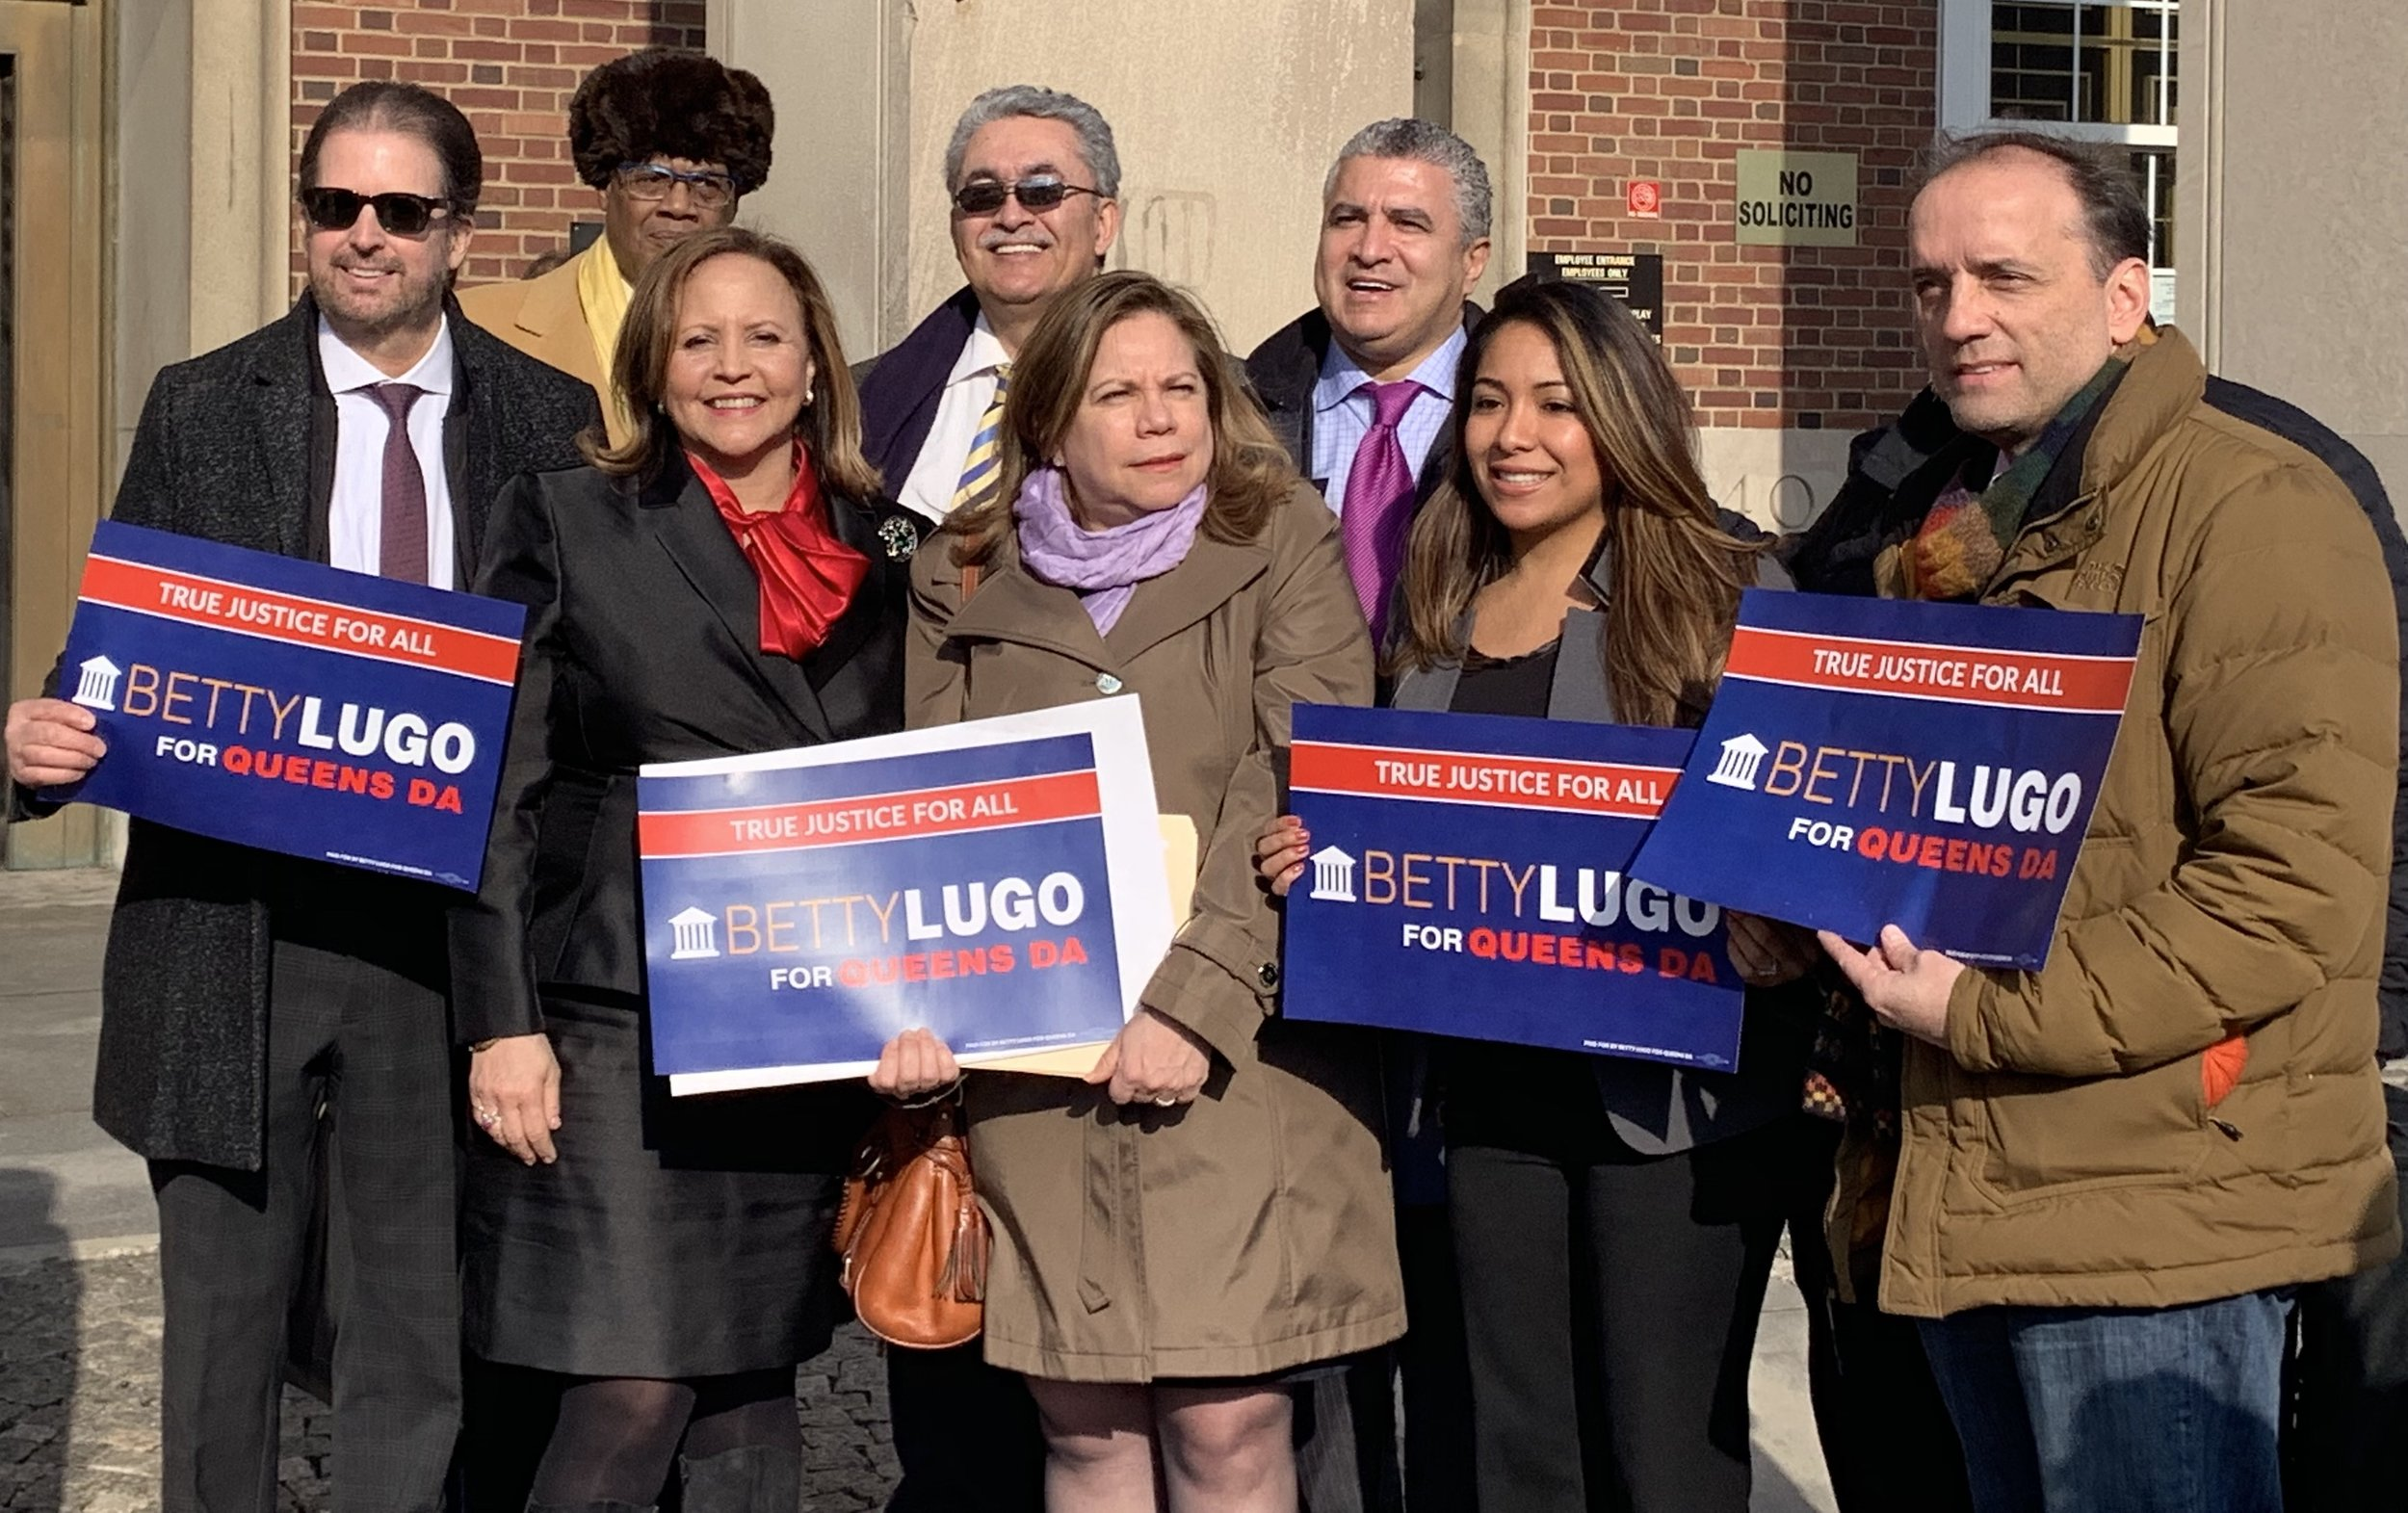 Betty Lugo is an attorney and candidate for the Democratic nomination for Queens DA. Photo courtesy of Lugo.